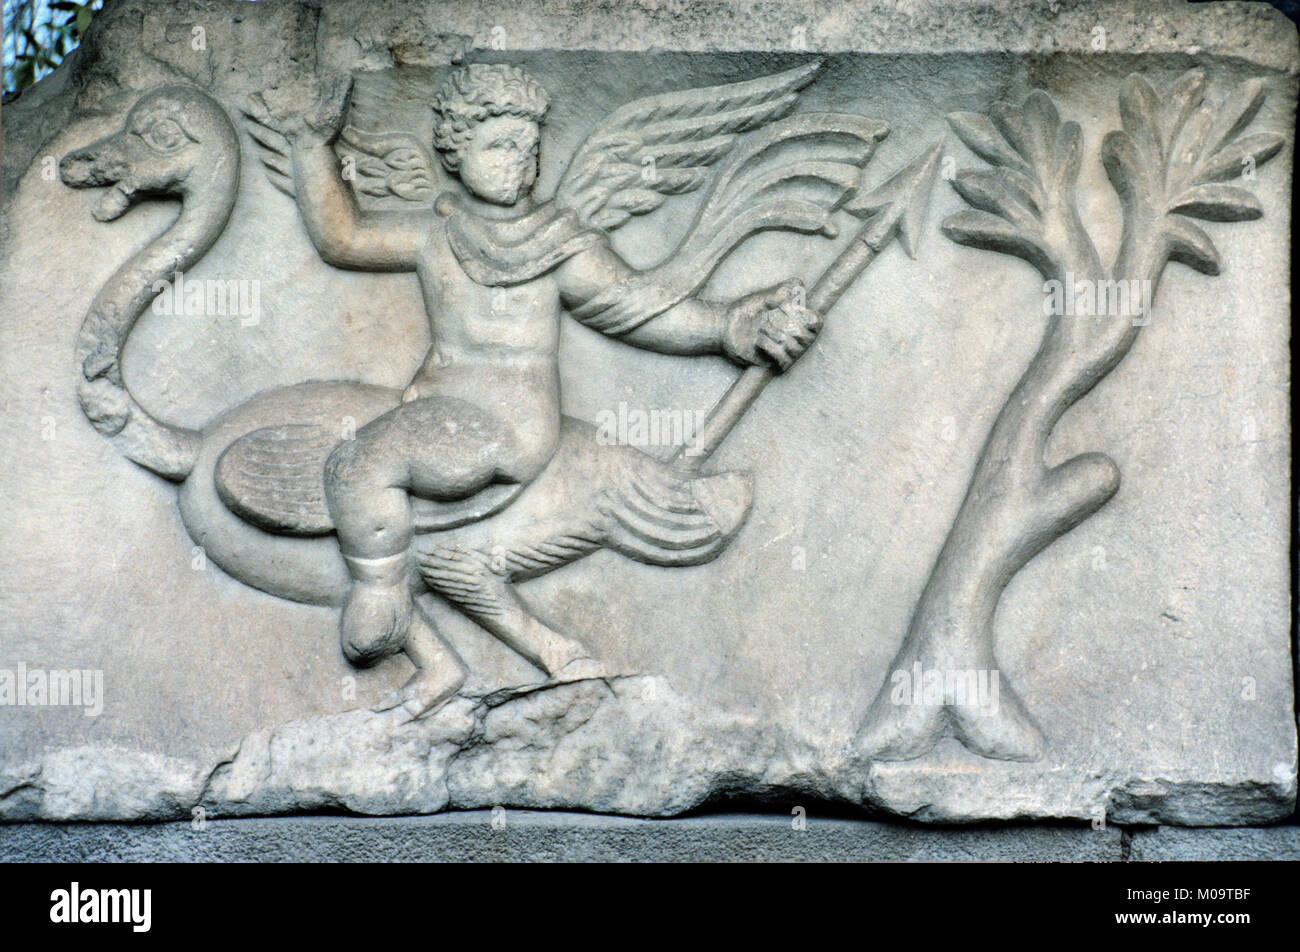 Marble Carving on Graeco-Roman Tomb or Sarcophagus Showing a Winged Angel Riding an Ostrich, Discovered in the Izmir Stock Photo